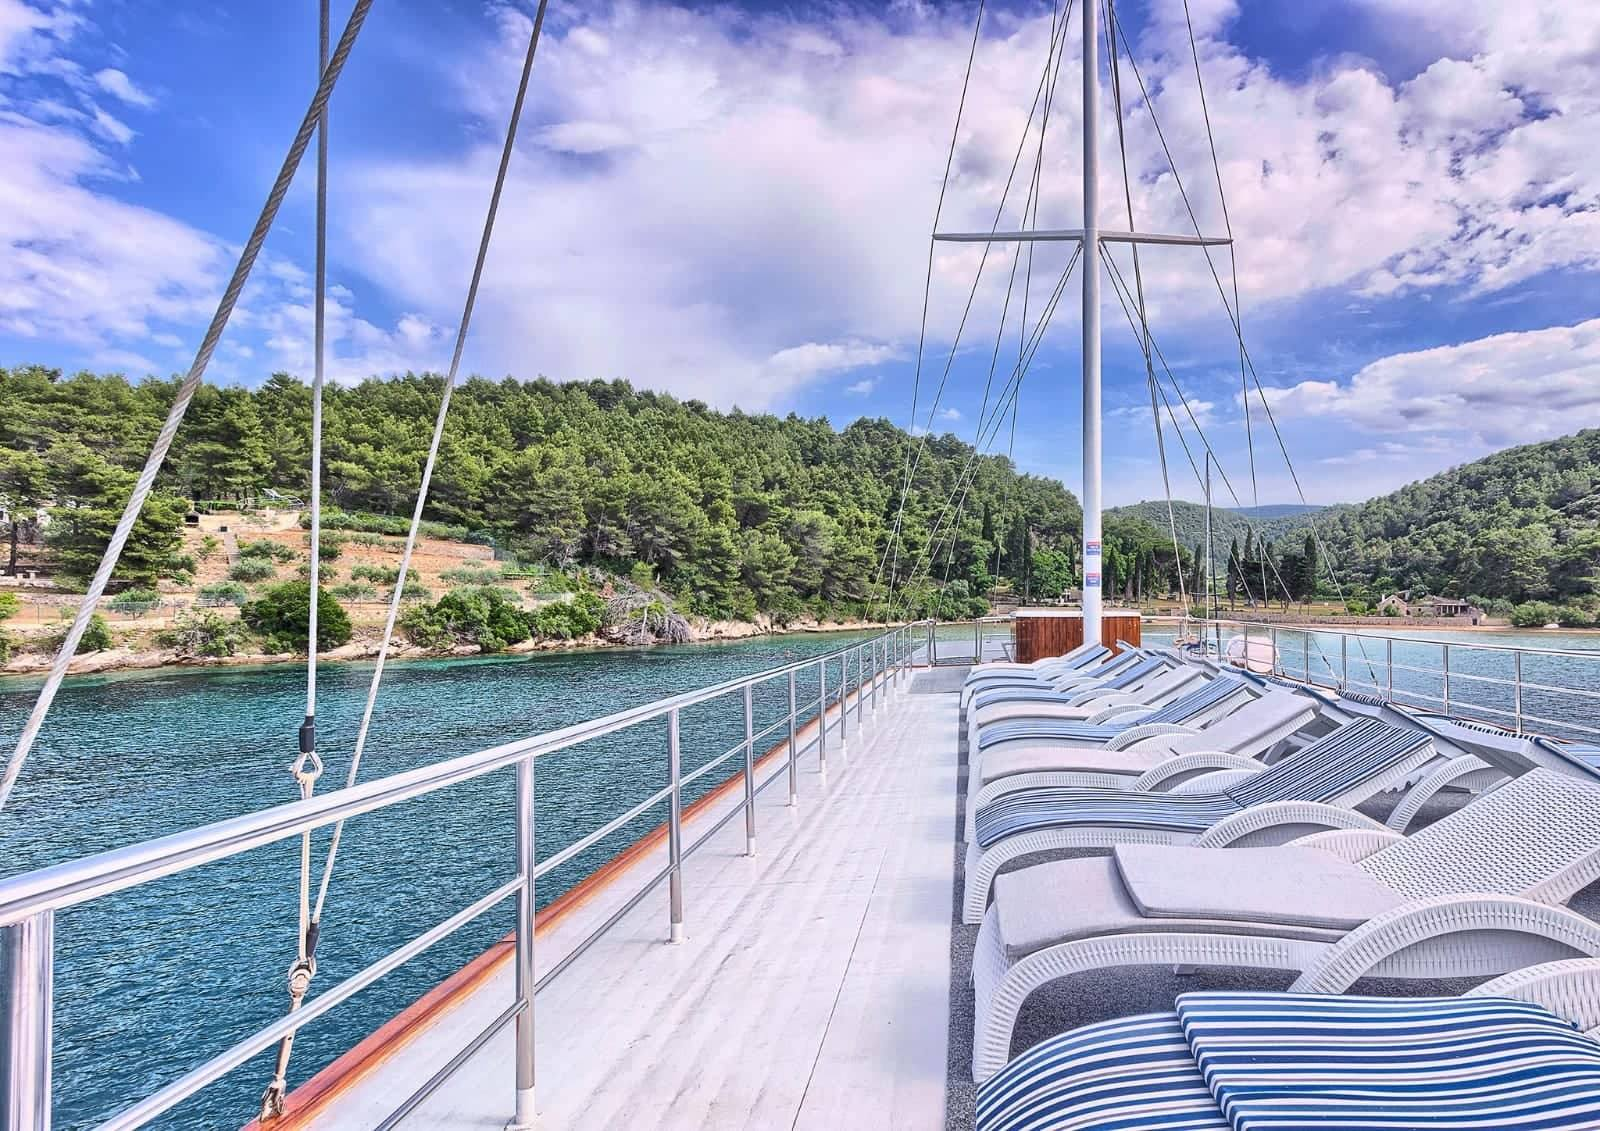 Croatia cycling and sailing tours on the Ocean boat